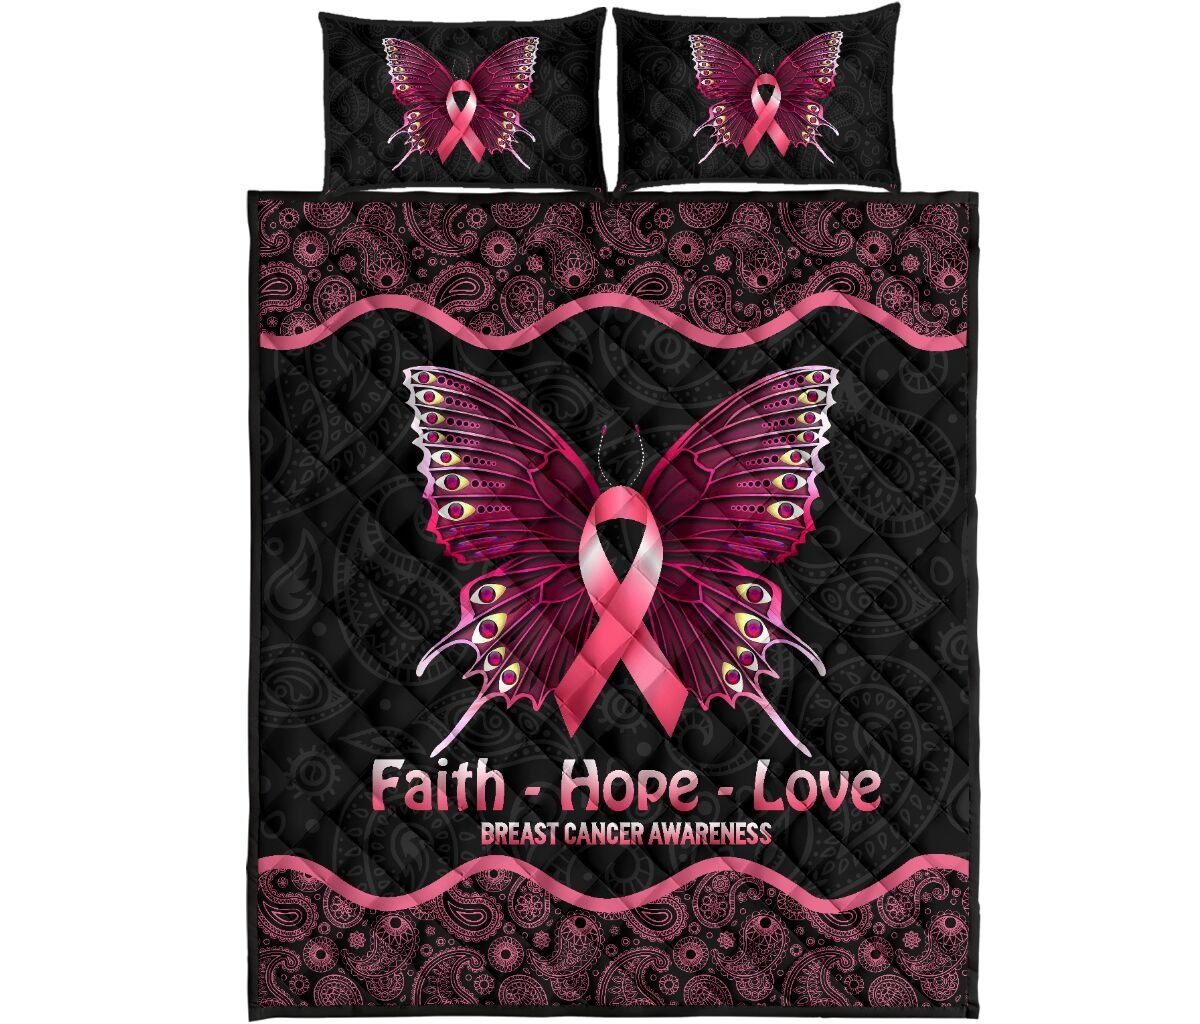 Butterfly faith hope love breast cancer awareness quilt bedding set4